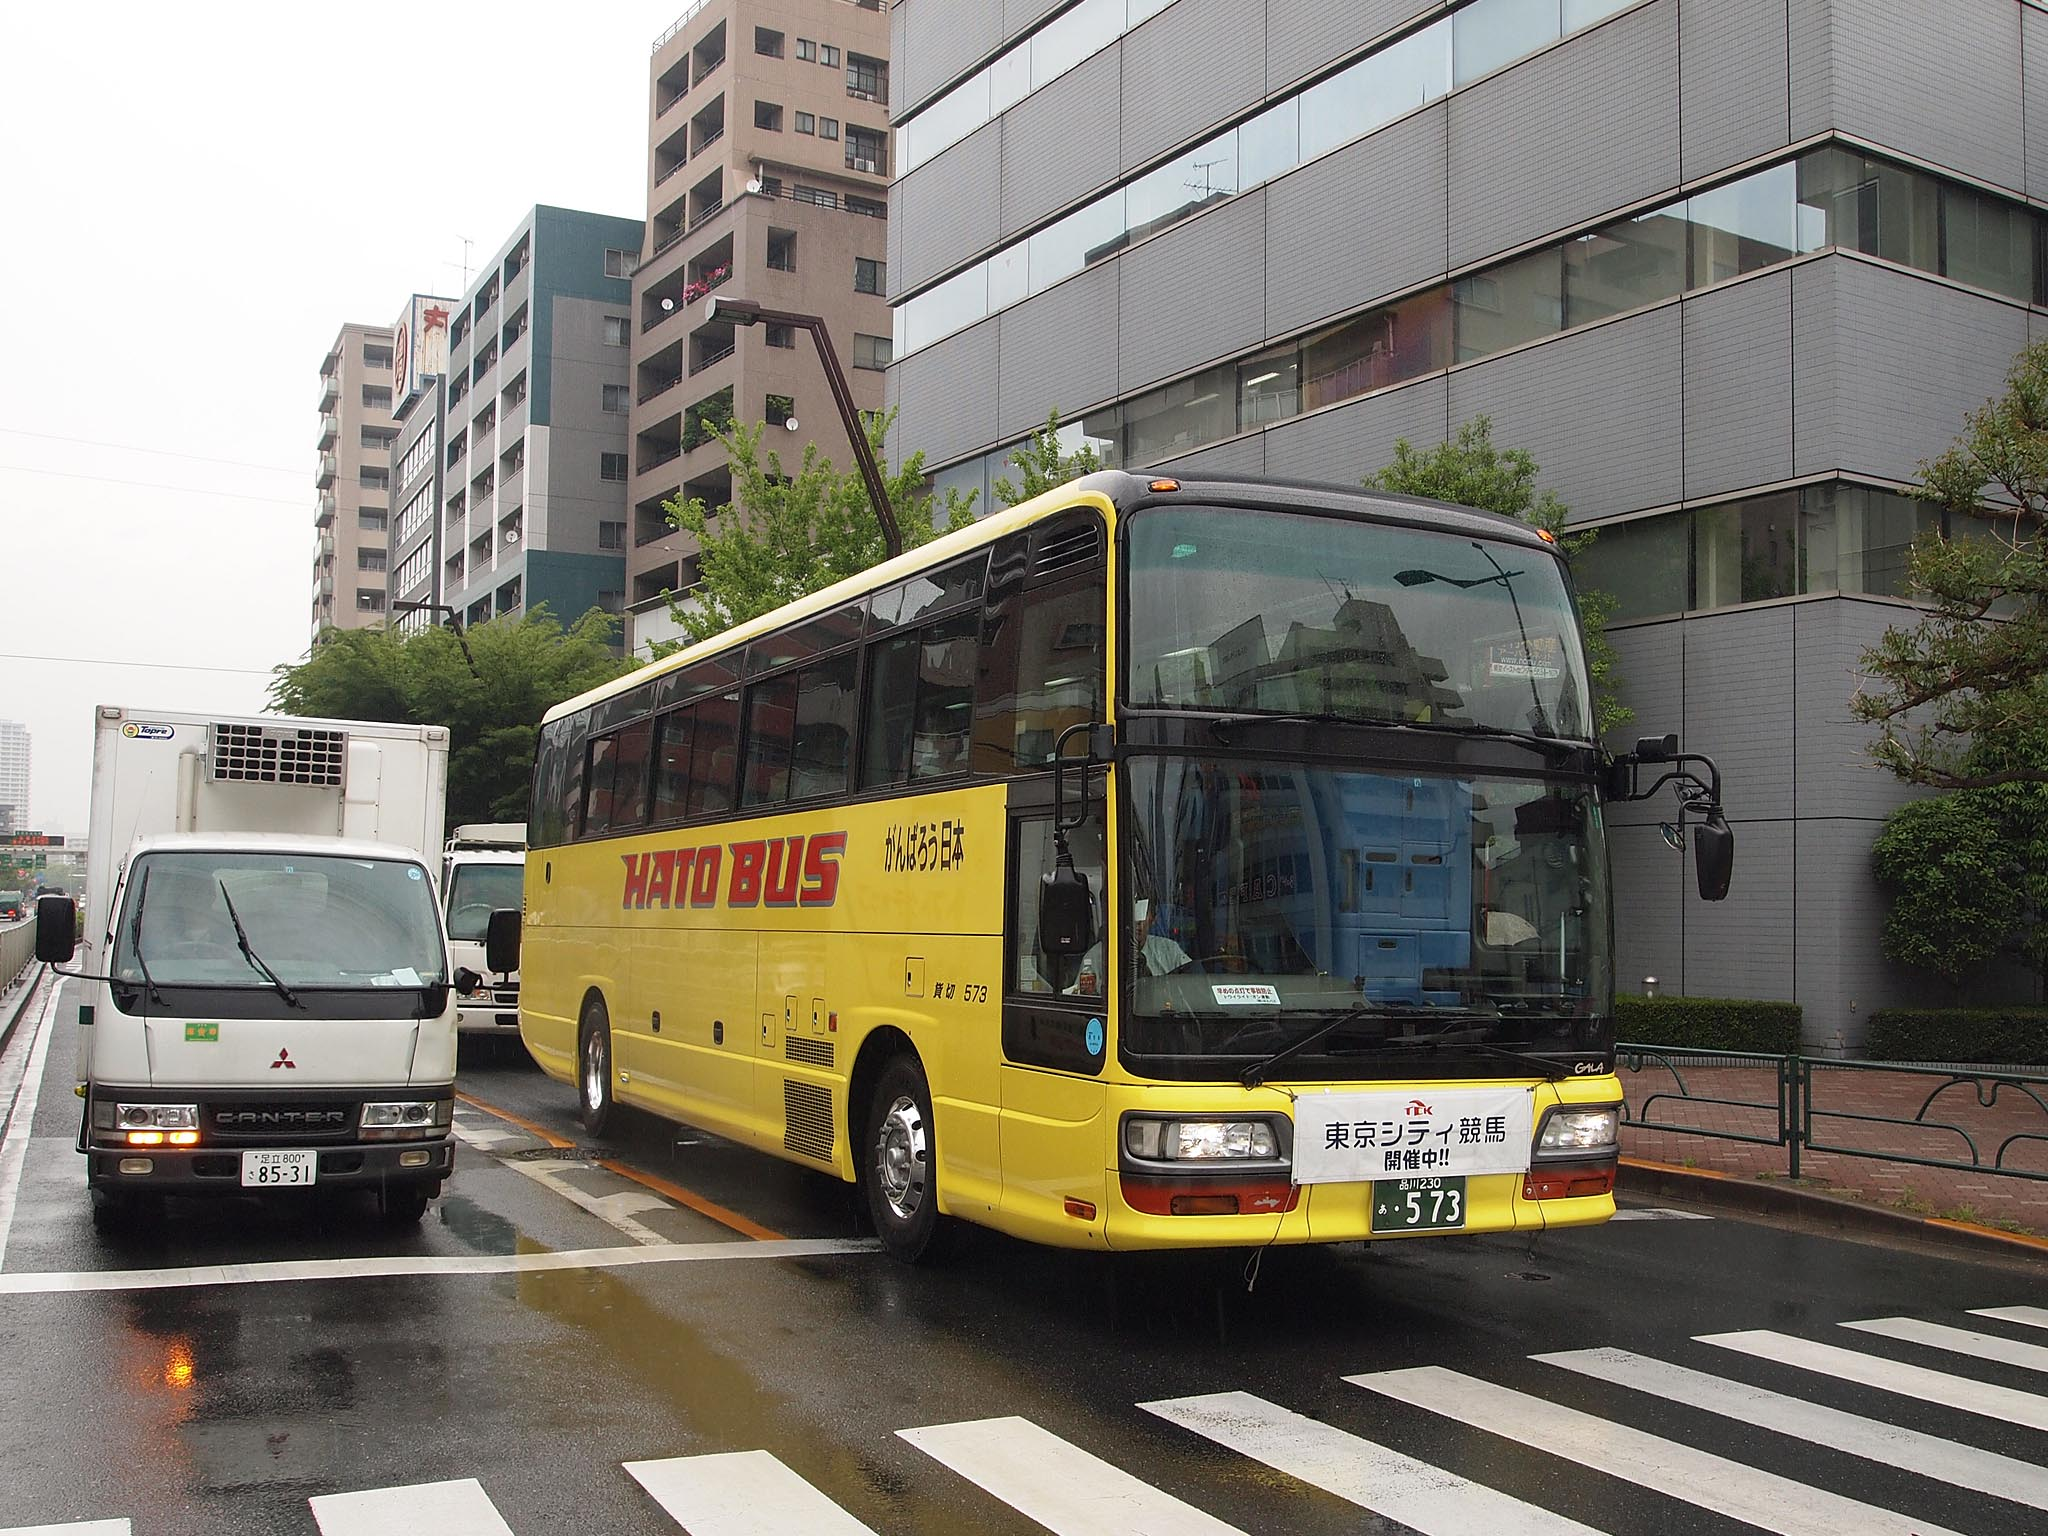 https://upload.wikimedia.org/wikipedia/commons/a/a5/Hatobus_573_TCK_Shuttle_Bus.jpg